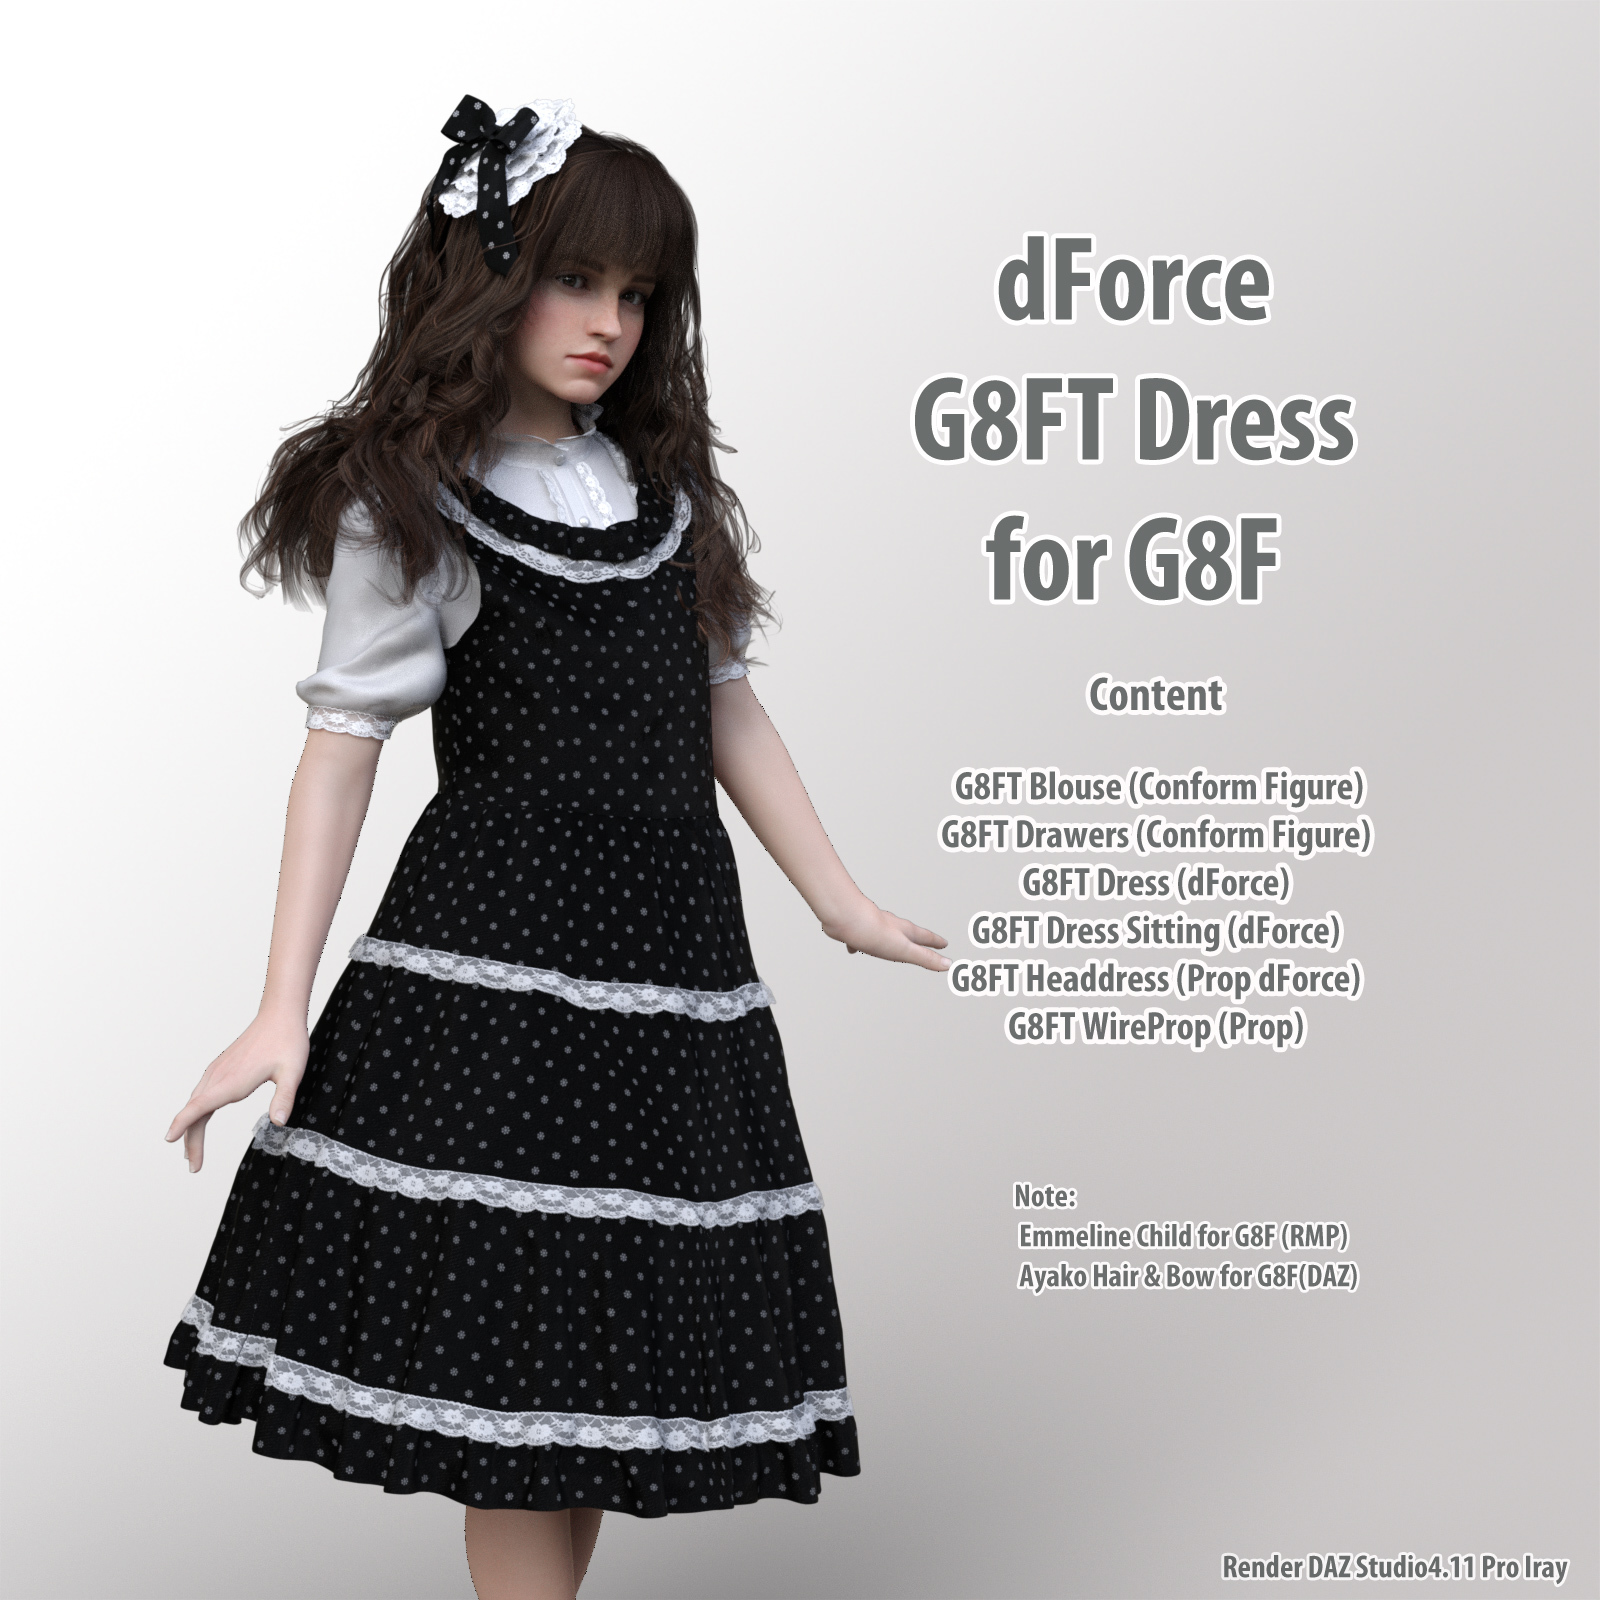 dForce G8FT Dress for G8F by kobamax